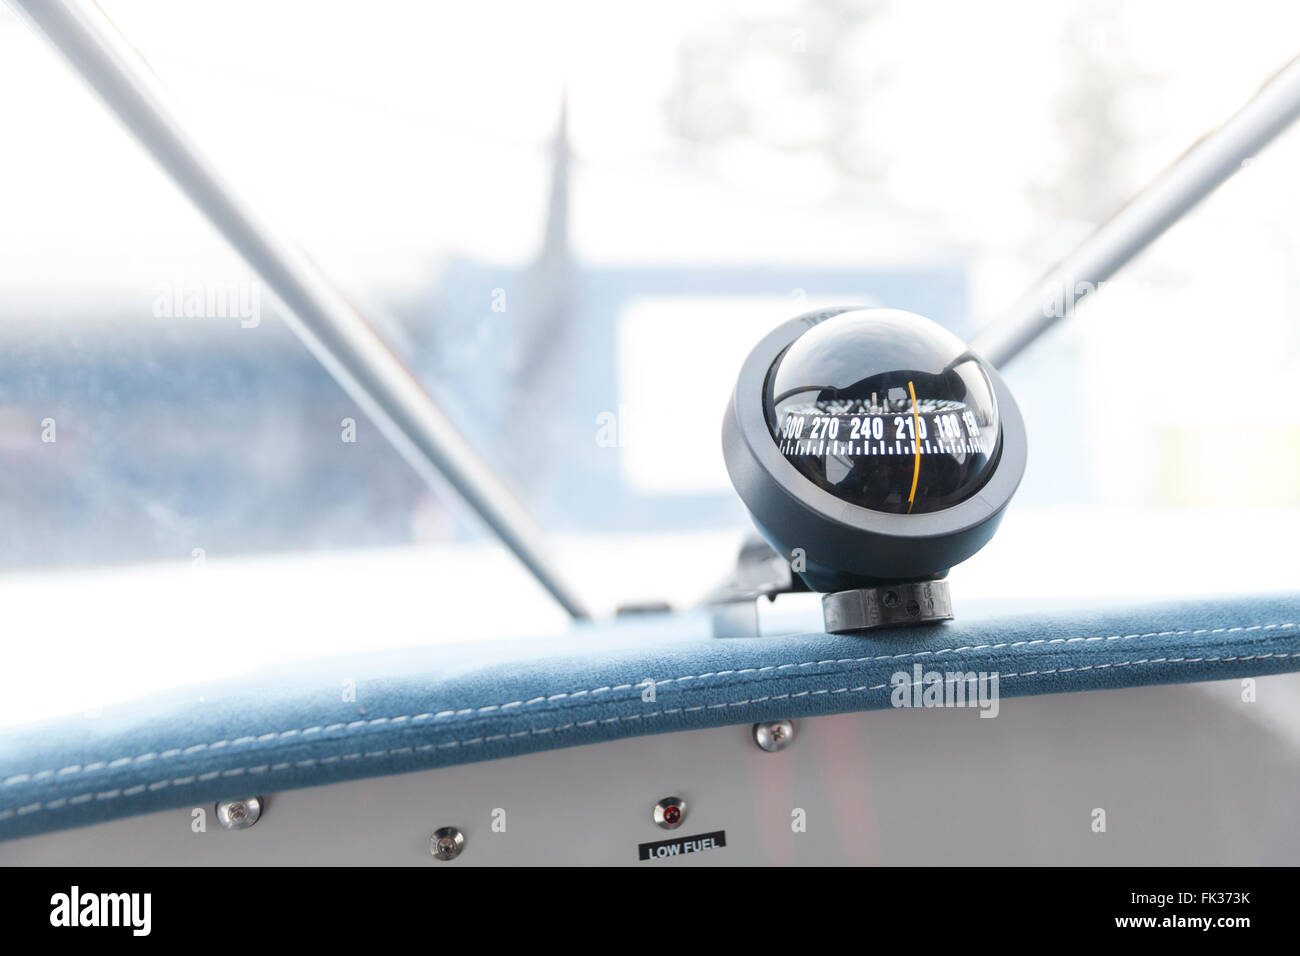 compass in airplane close up - Stock Image